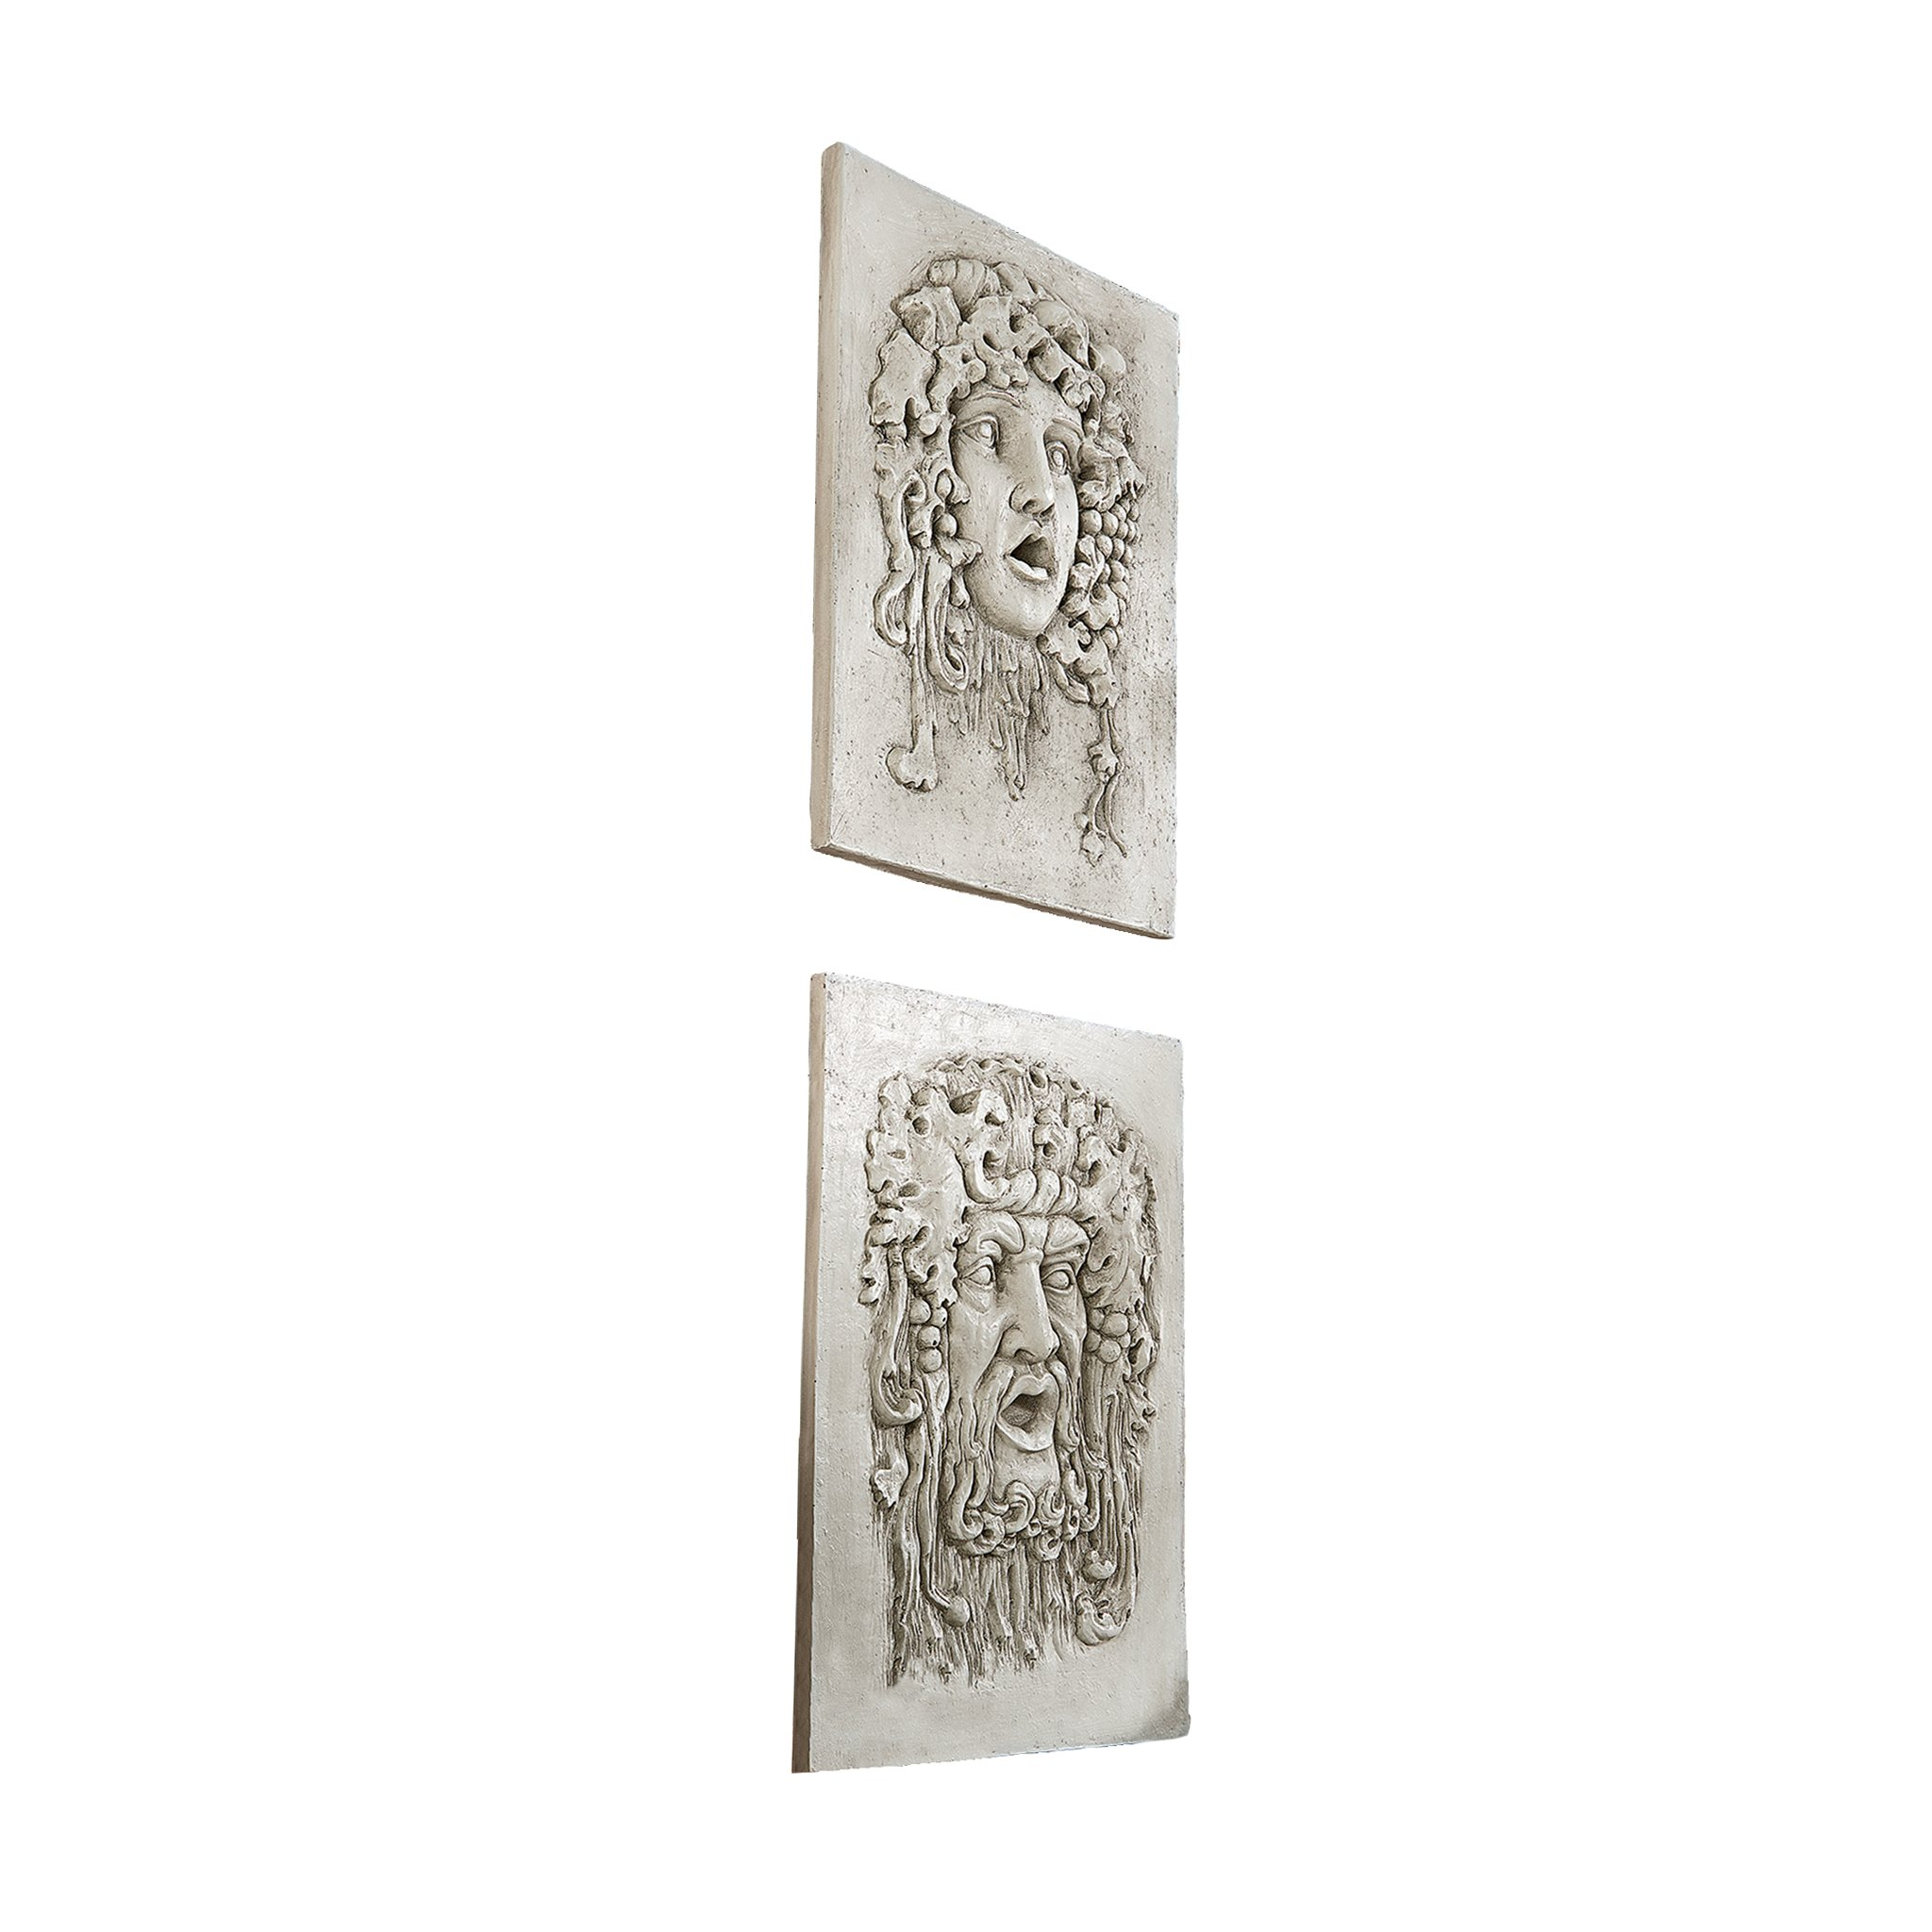 Design Toscano and Vappa Gods of The Grapes Italian Style Wall Sculptures, Medium